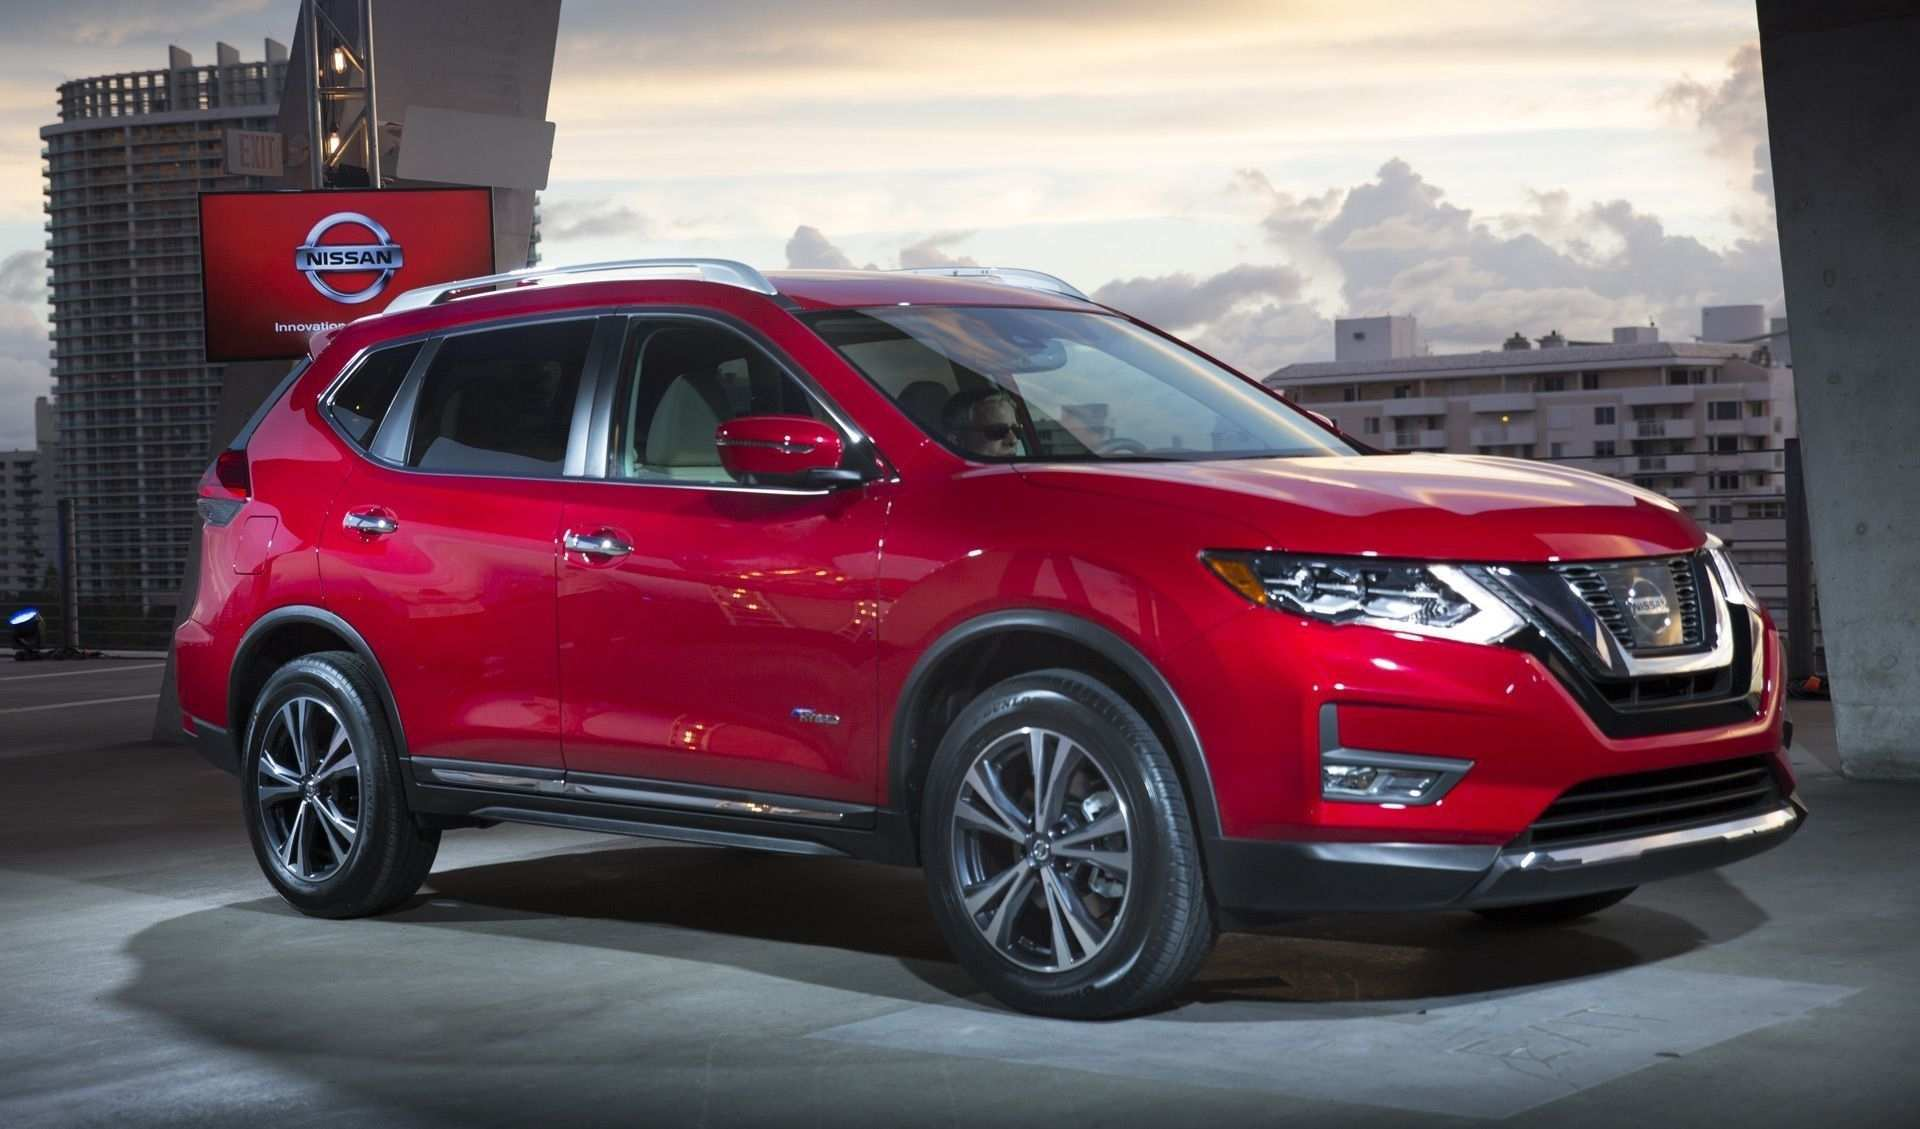 44 Gallery of Nissan Qashqai 2020 Australia Specs and Review with Nissan Qashqai 2020 Australia